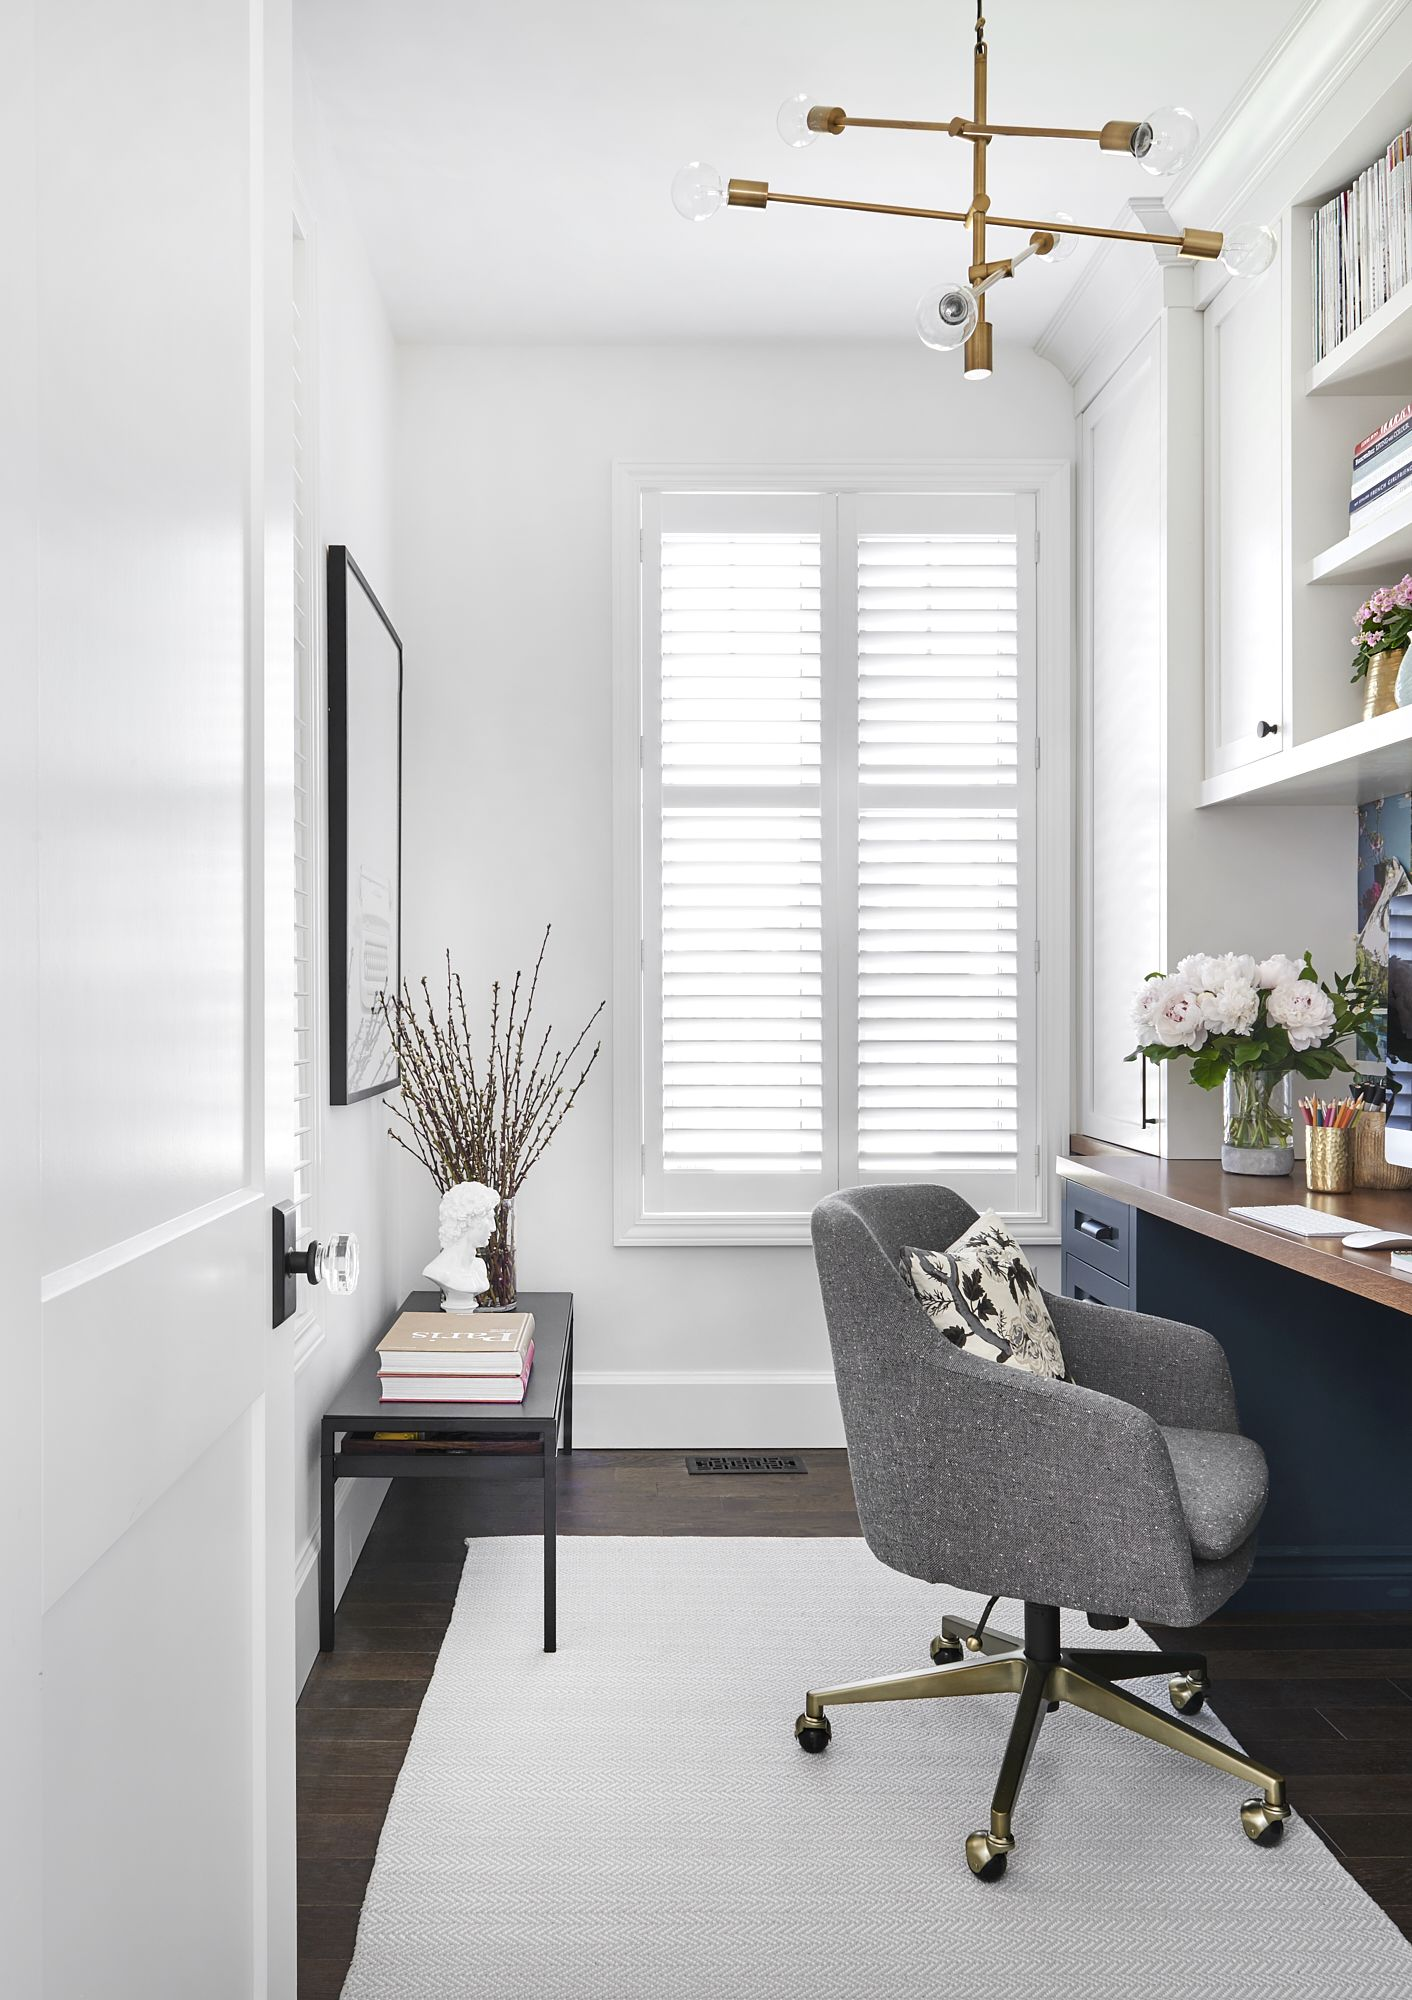 Vanessa Francis Design | Home Office | Pinterest | Modern, Office ...